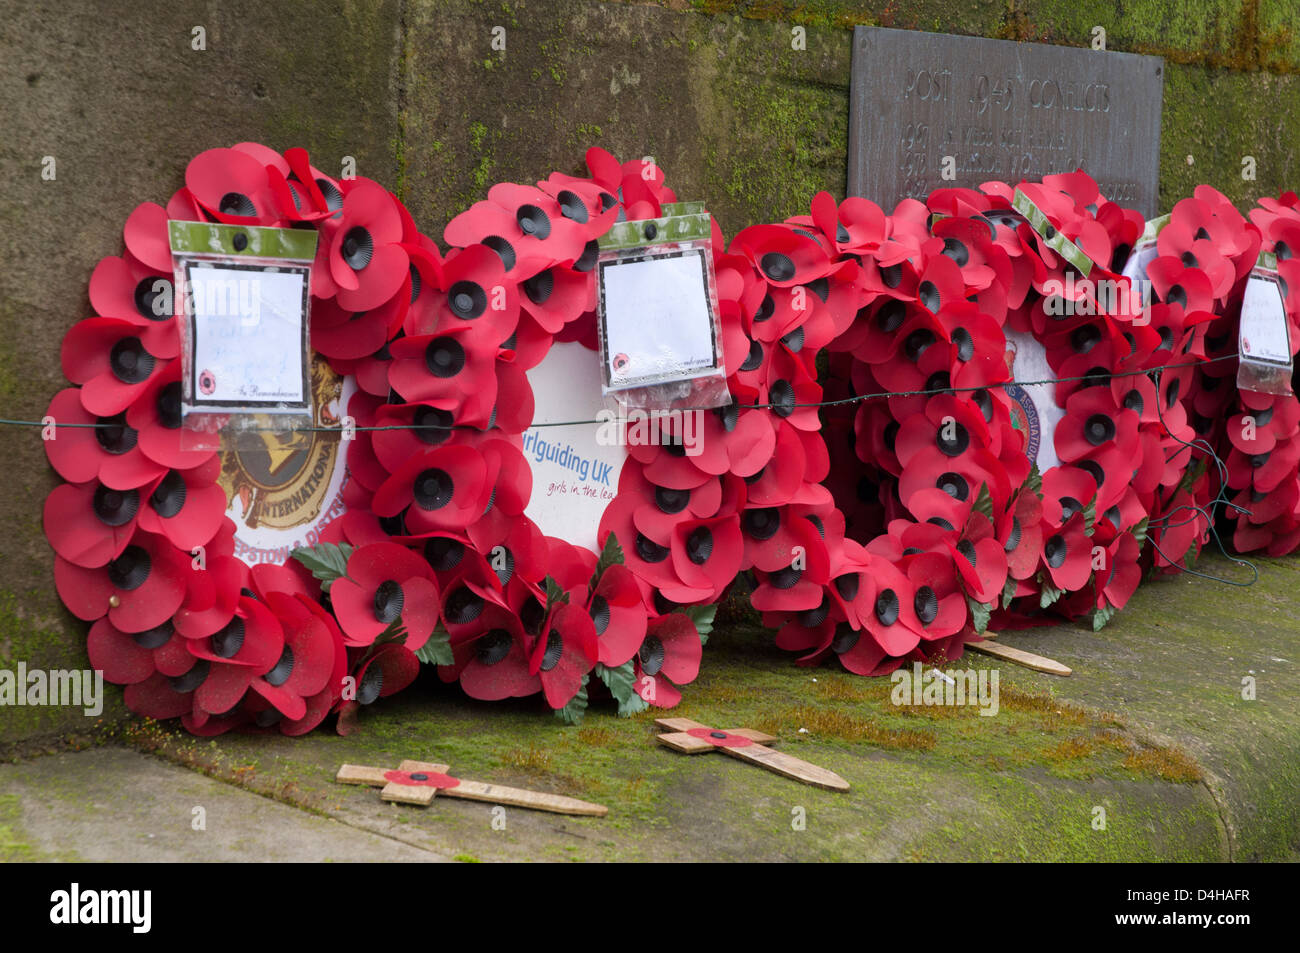 Rememberance Day wreaths laid at town memorial, wet, wintry, emotional , war dead remembered - Stock Image